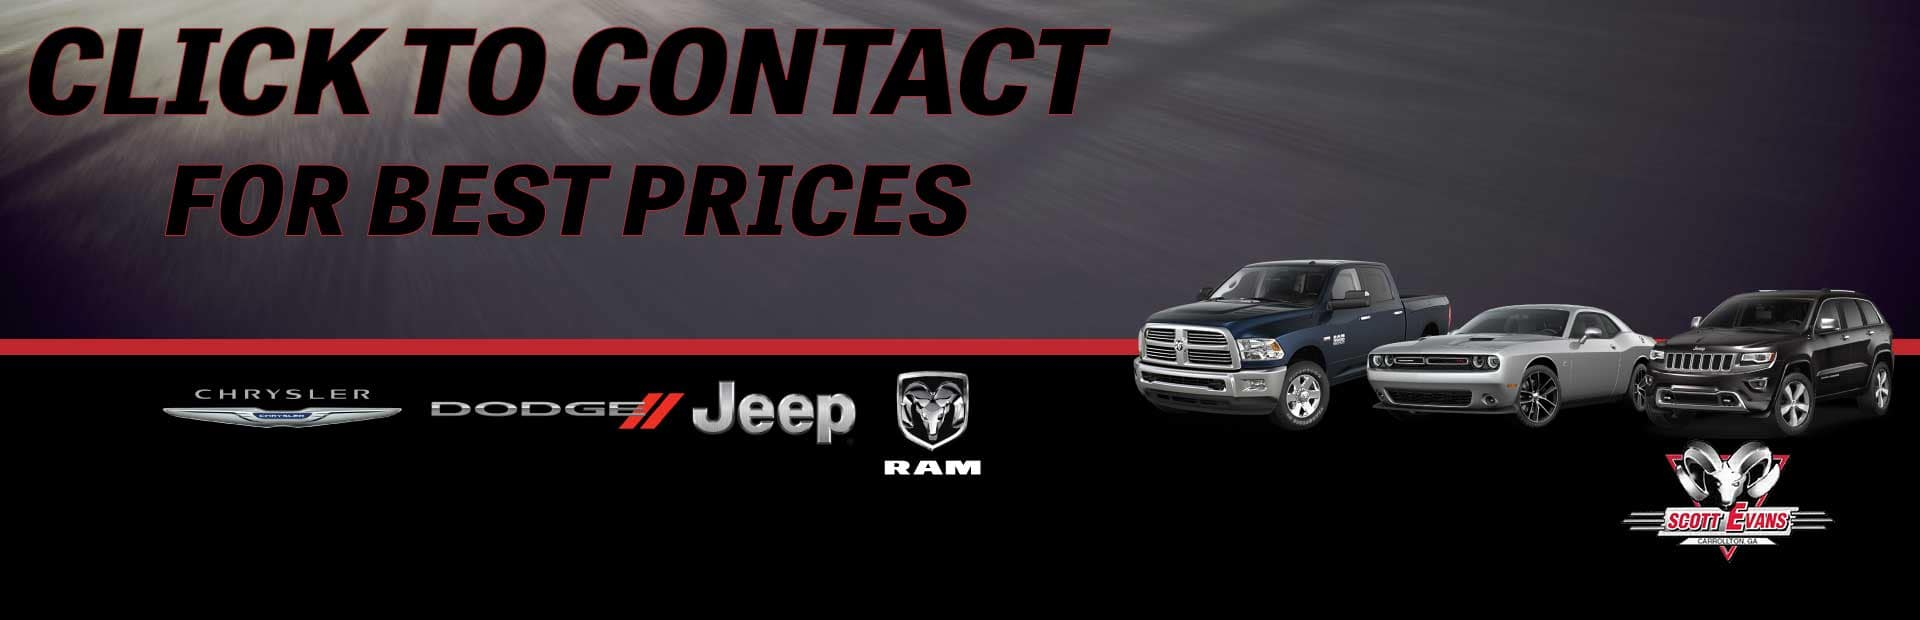 Scott Evans Chrysler Dodge Jeep Ram Cdjr Dealer In Carrollton Ga